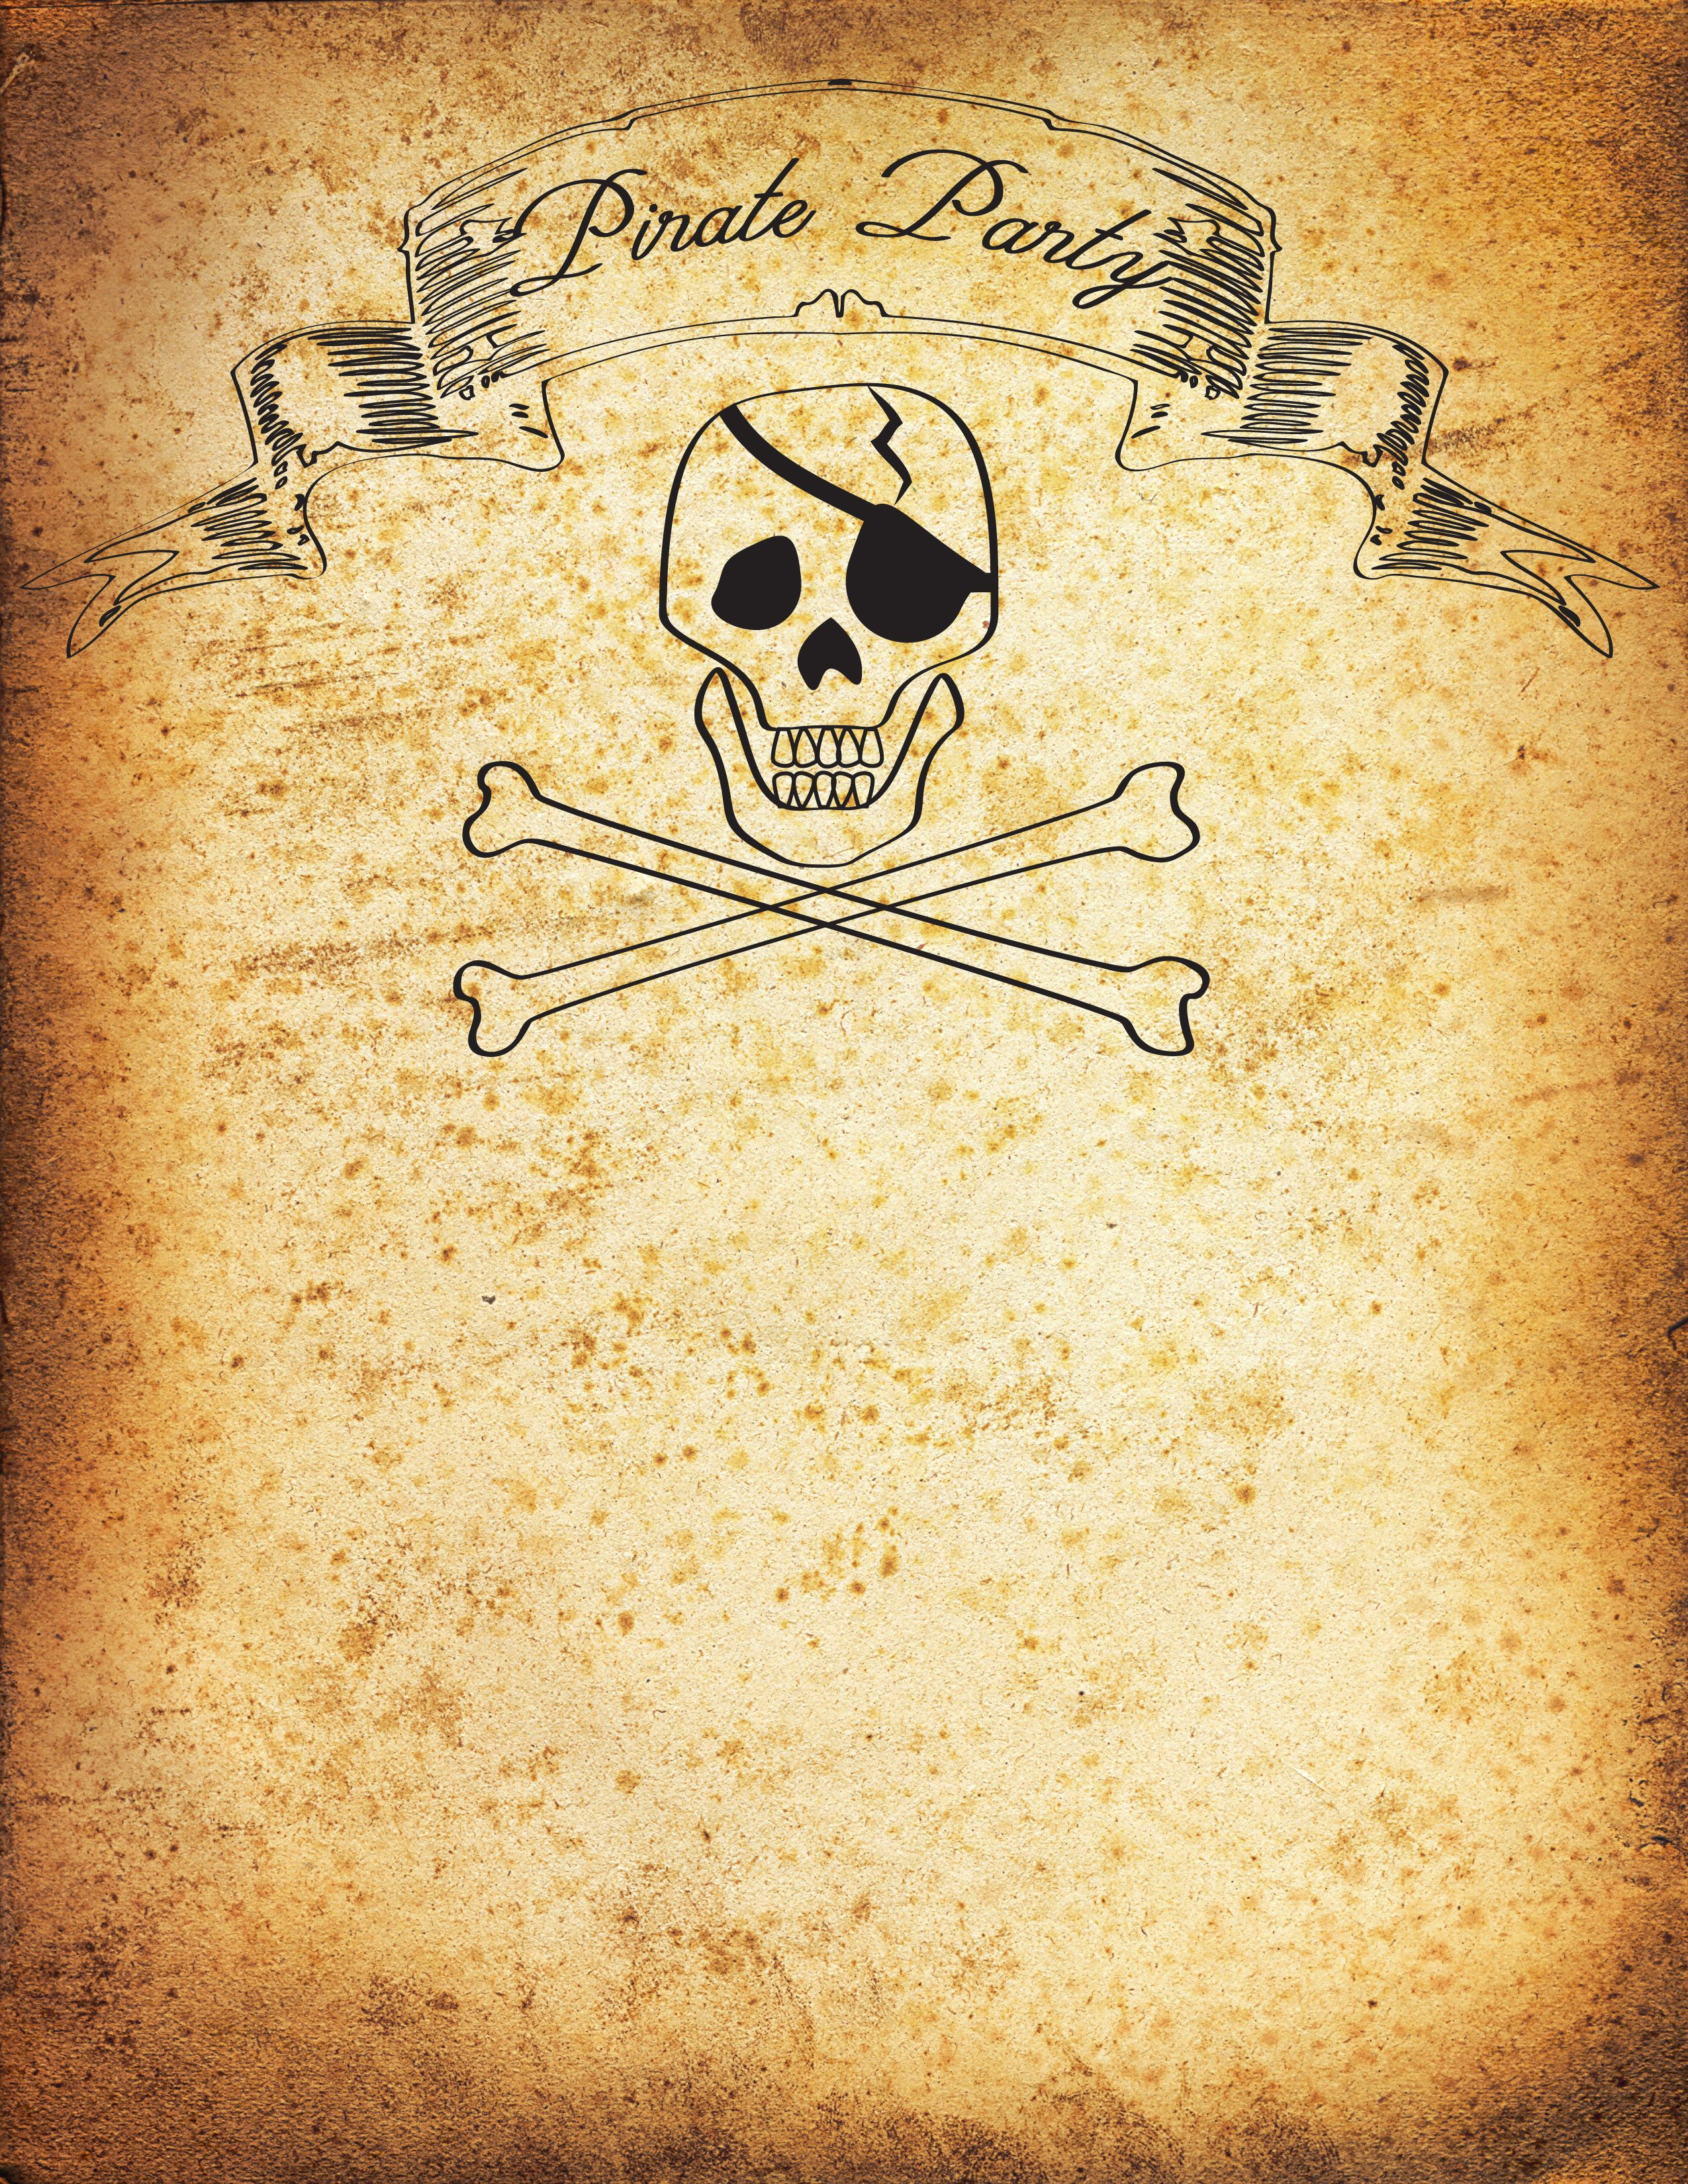 Free Pirate Party Invitation Printable Tutorial | Party ...